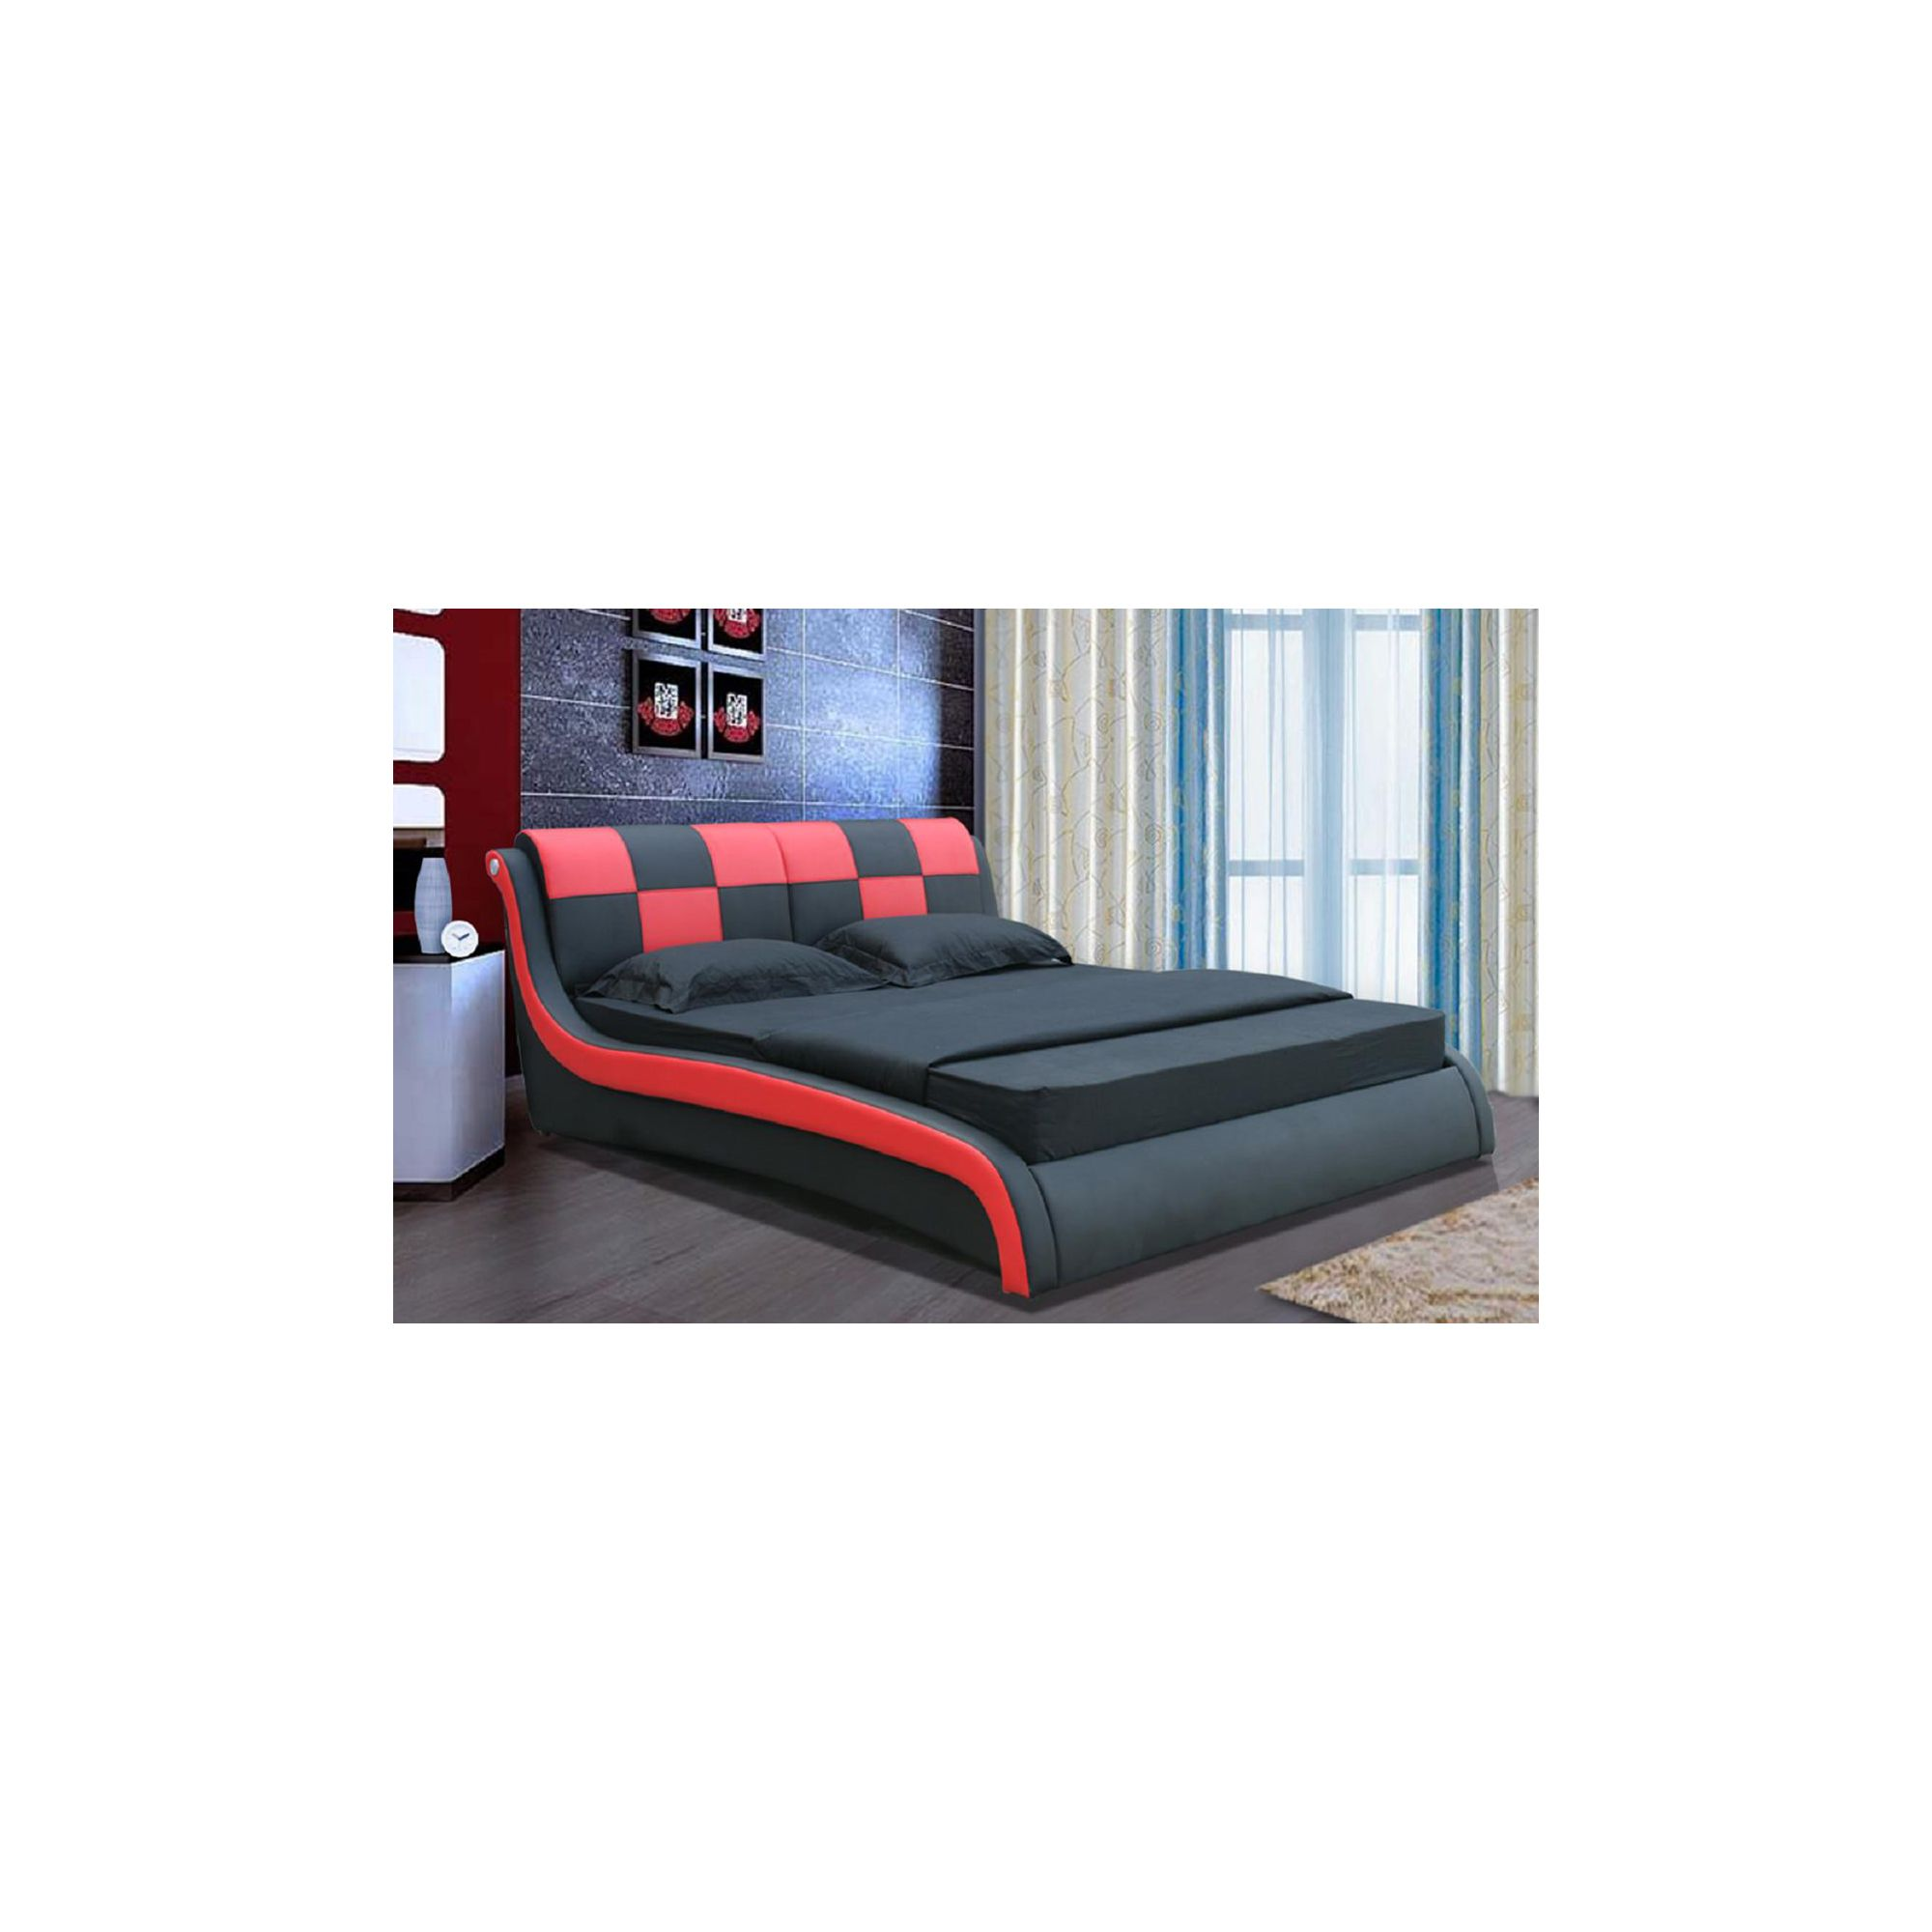 Giomani Designs Designer Check Bed - Red / Black - Double at Tescos Direct